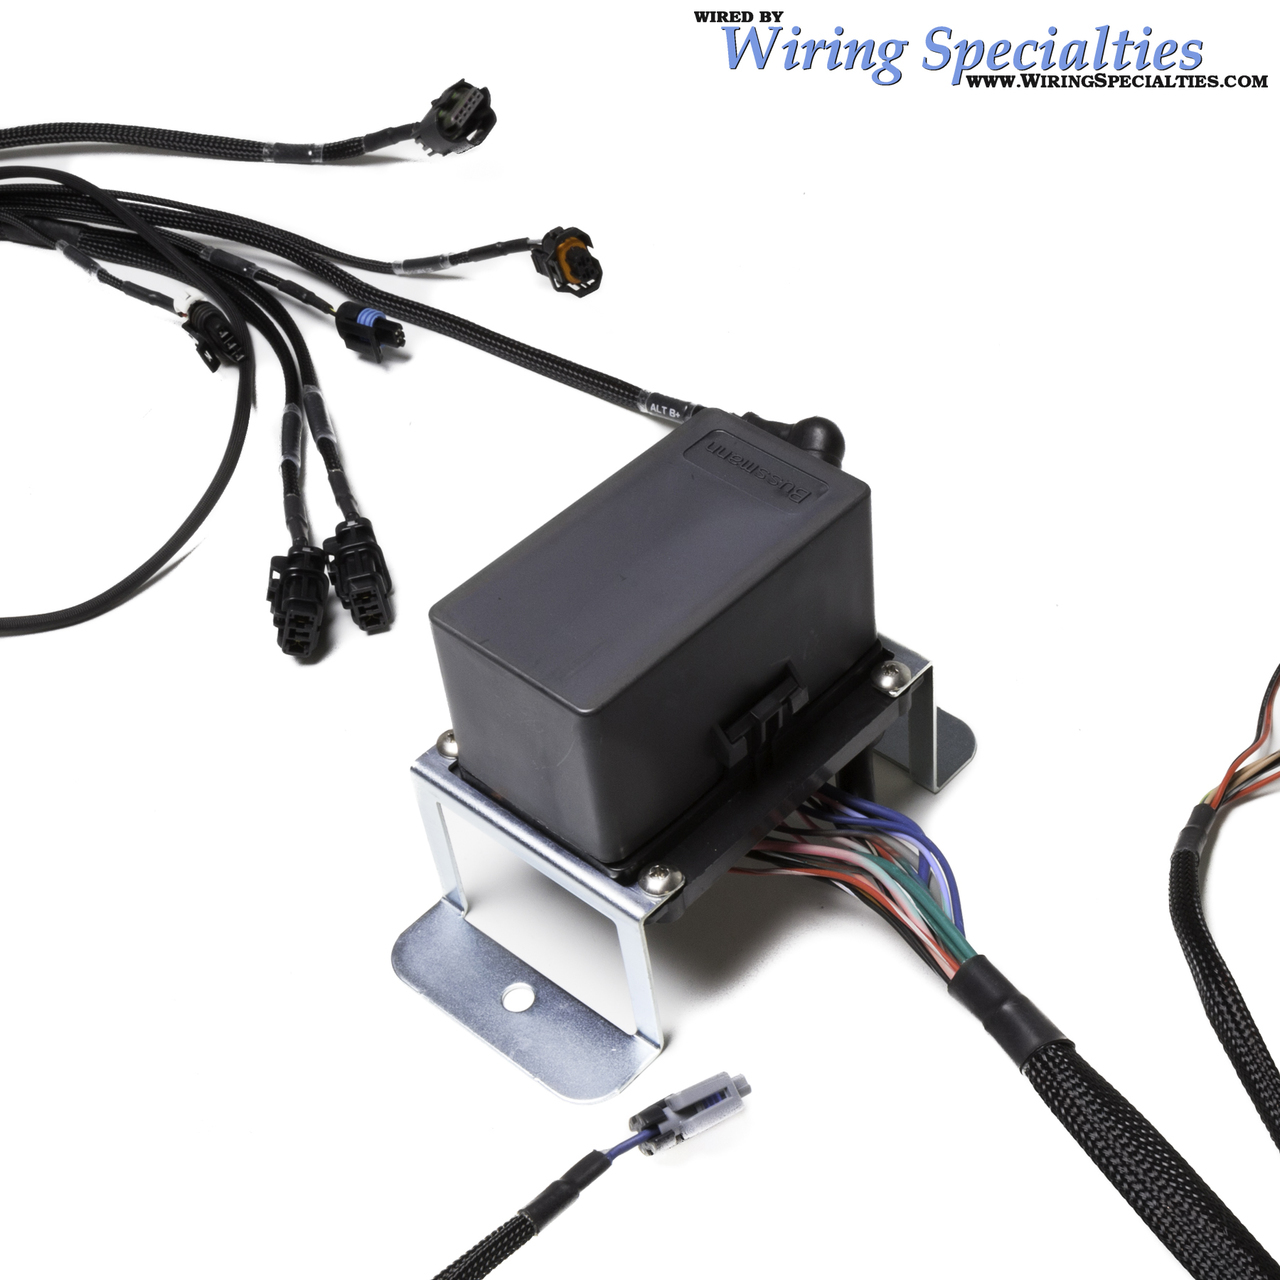 Bmw E30 Ls2 Swap Wiring Harness Sikky Product Wire Specialties Dbw For Pro Series